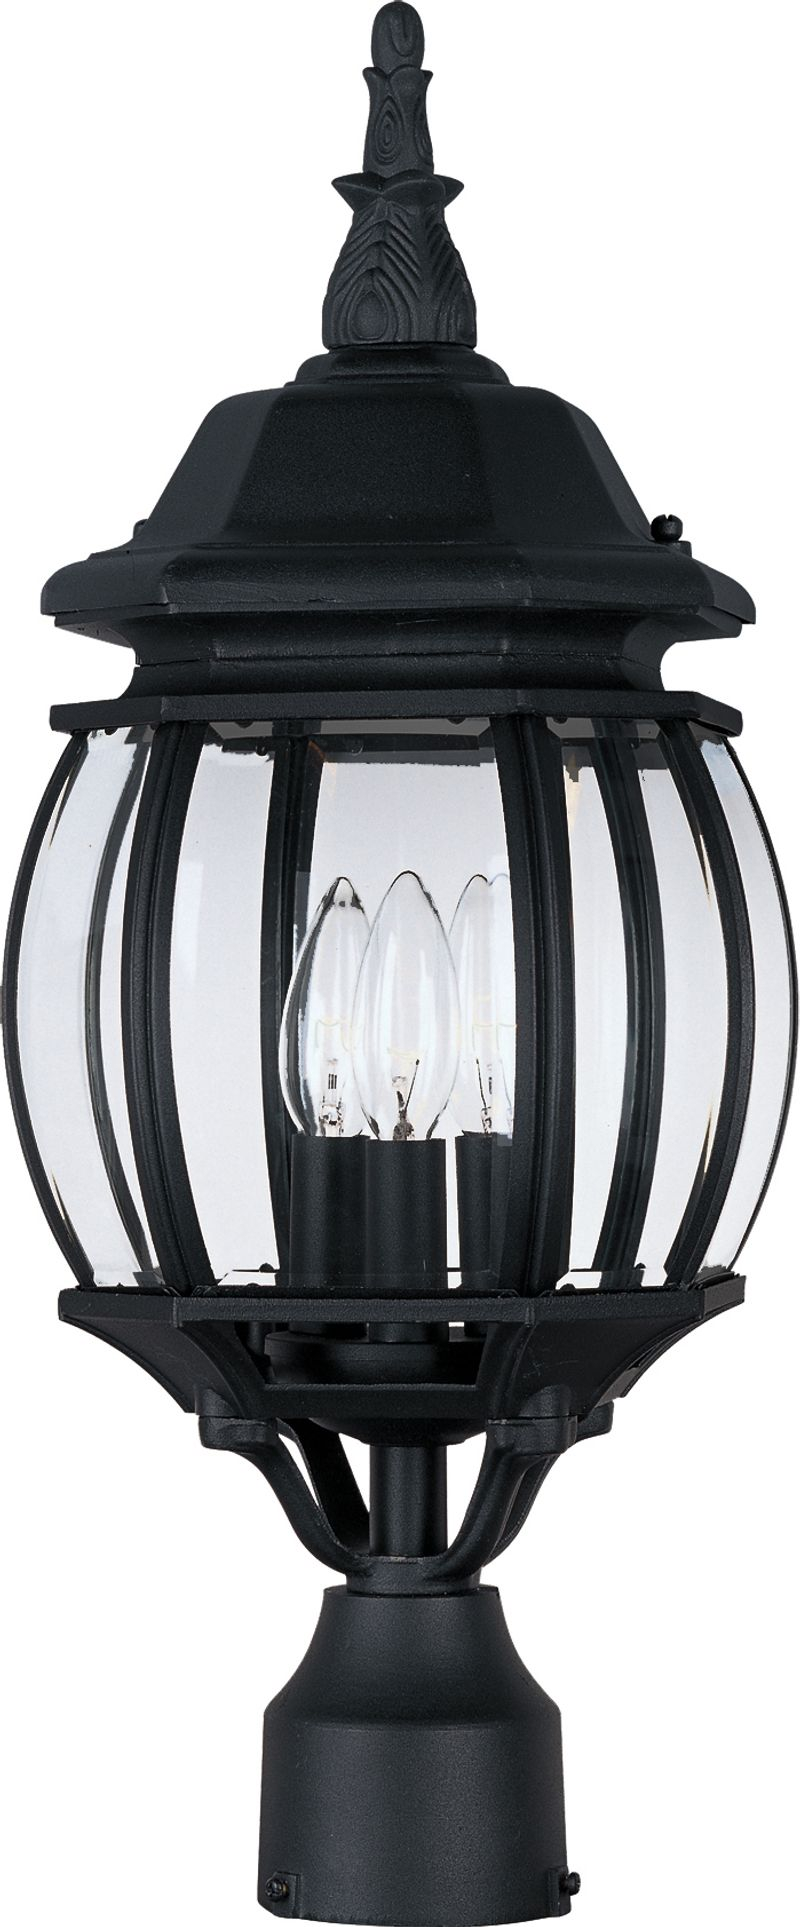 "Crown Hill 8"" 3-Light Post Mount - Black"